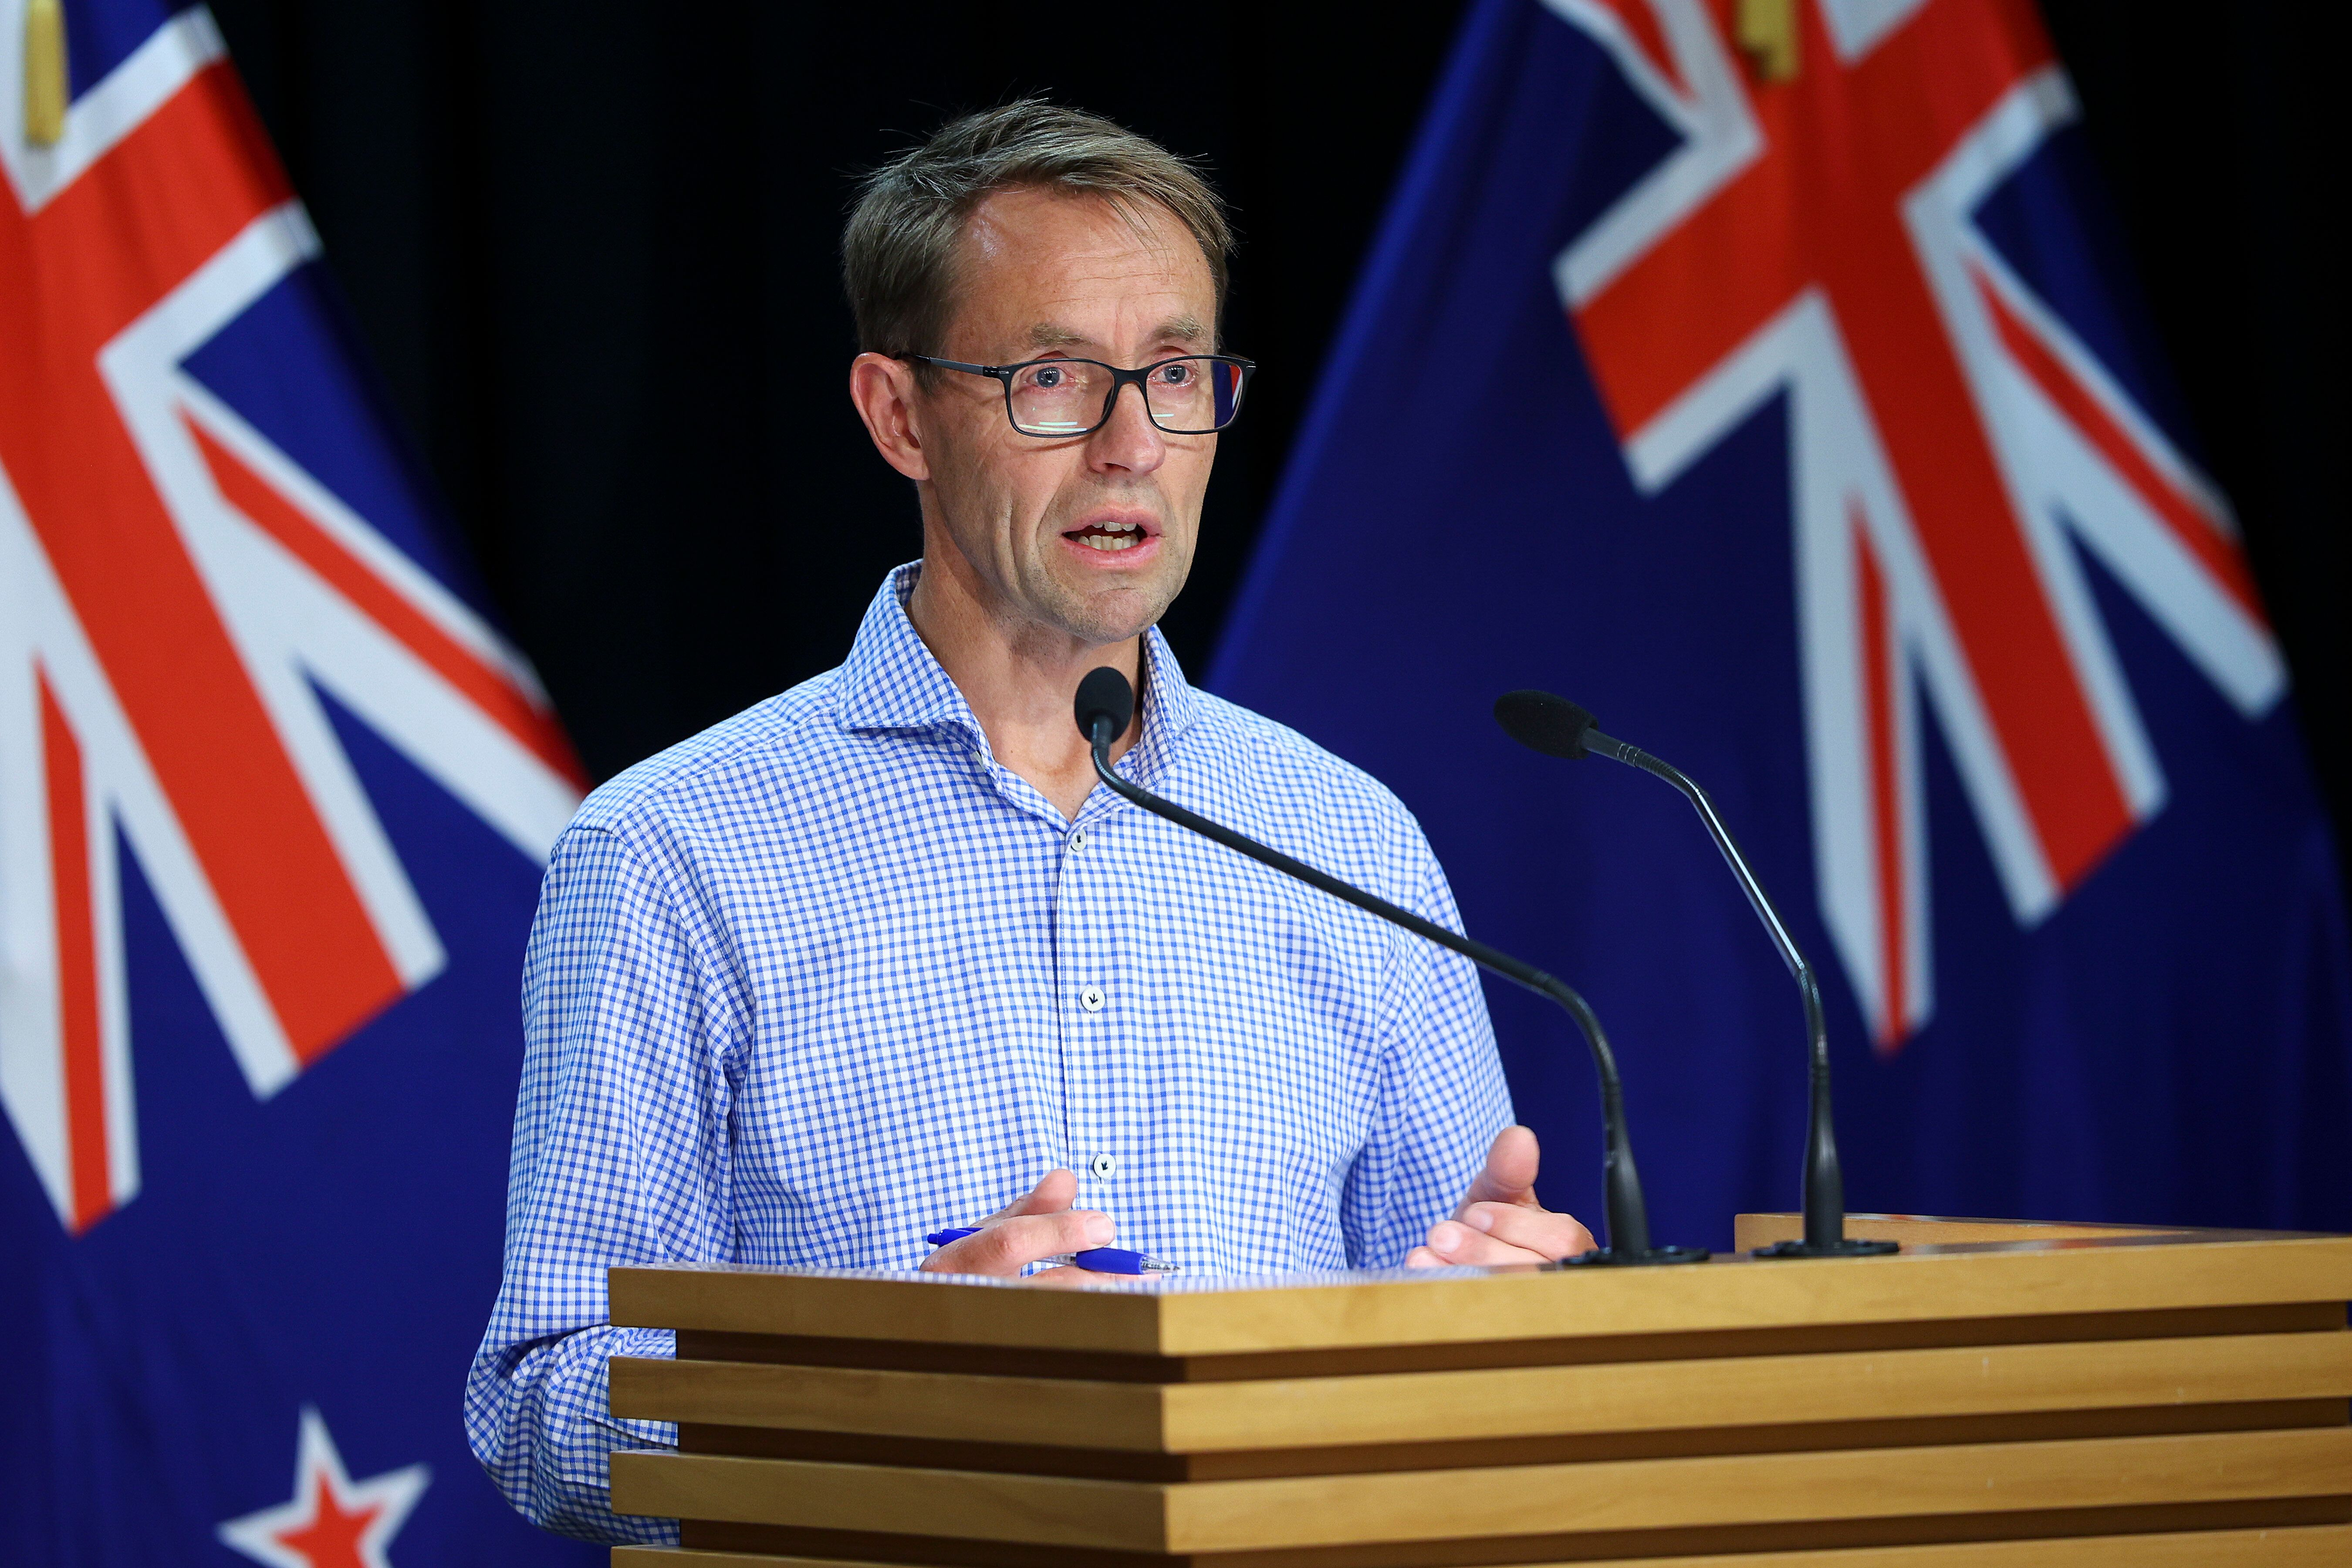 Director-General of Health Dr. Ashley Bloomfield speaks to media during a press conference at Parliament on Jan. 24, 2021, in